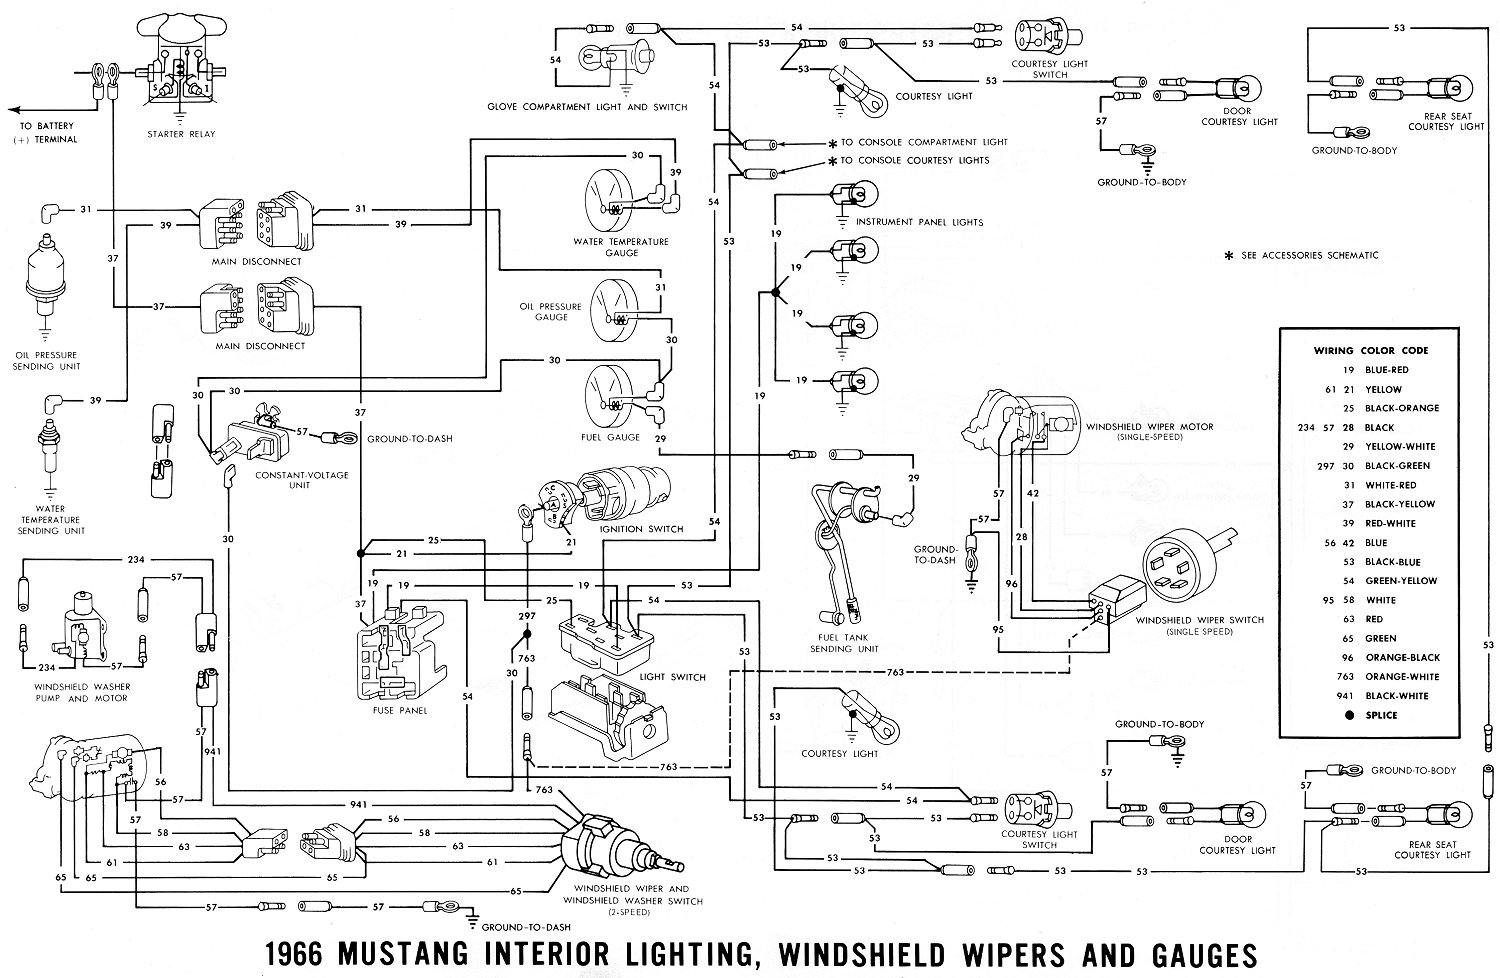 66inter1 1966 mustang wiring diagrams average joe restoration mustang wiring harness diagram at suagrazia.org